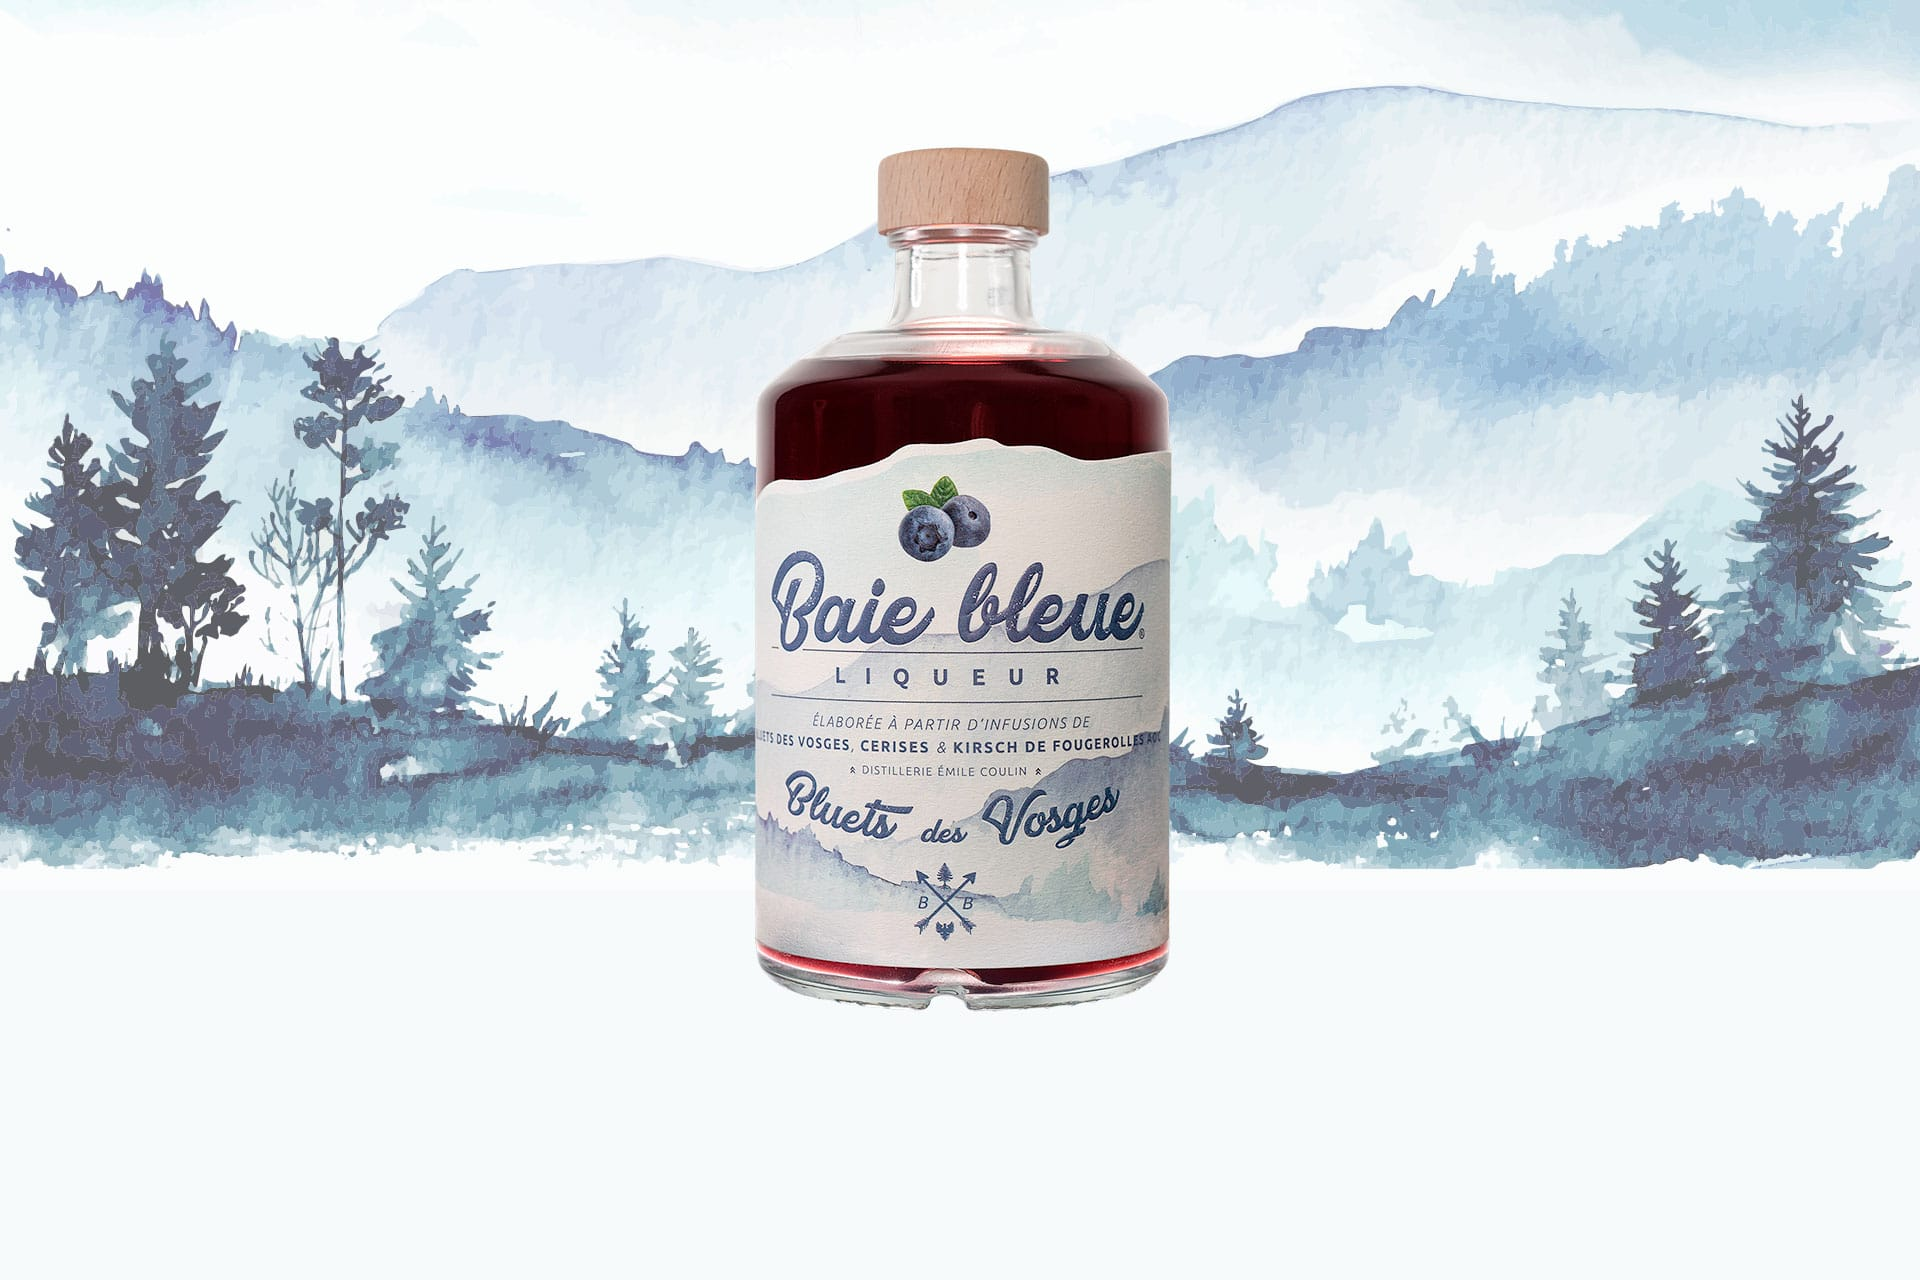 Blueberry liqueur made from Vosges blueberries